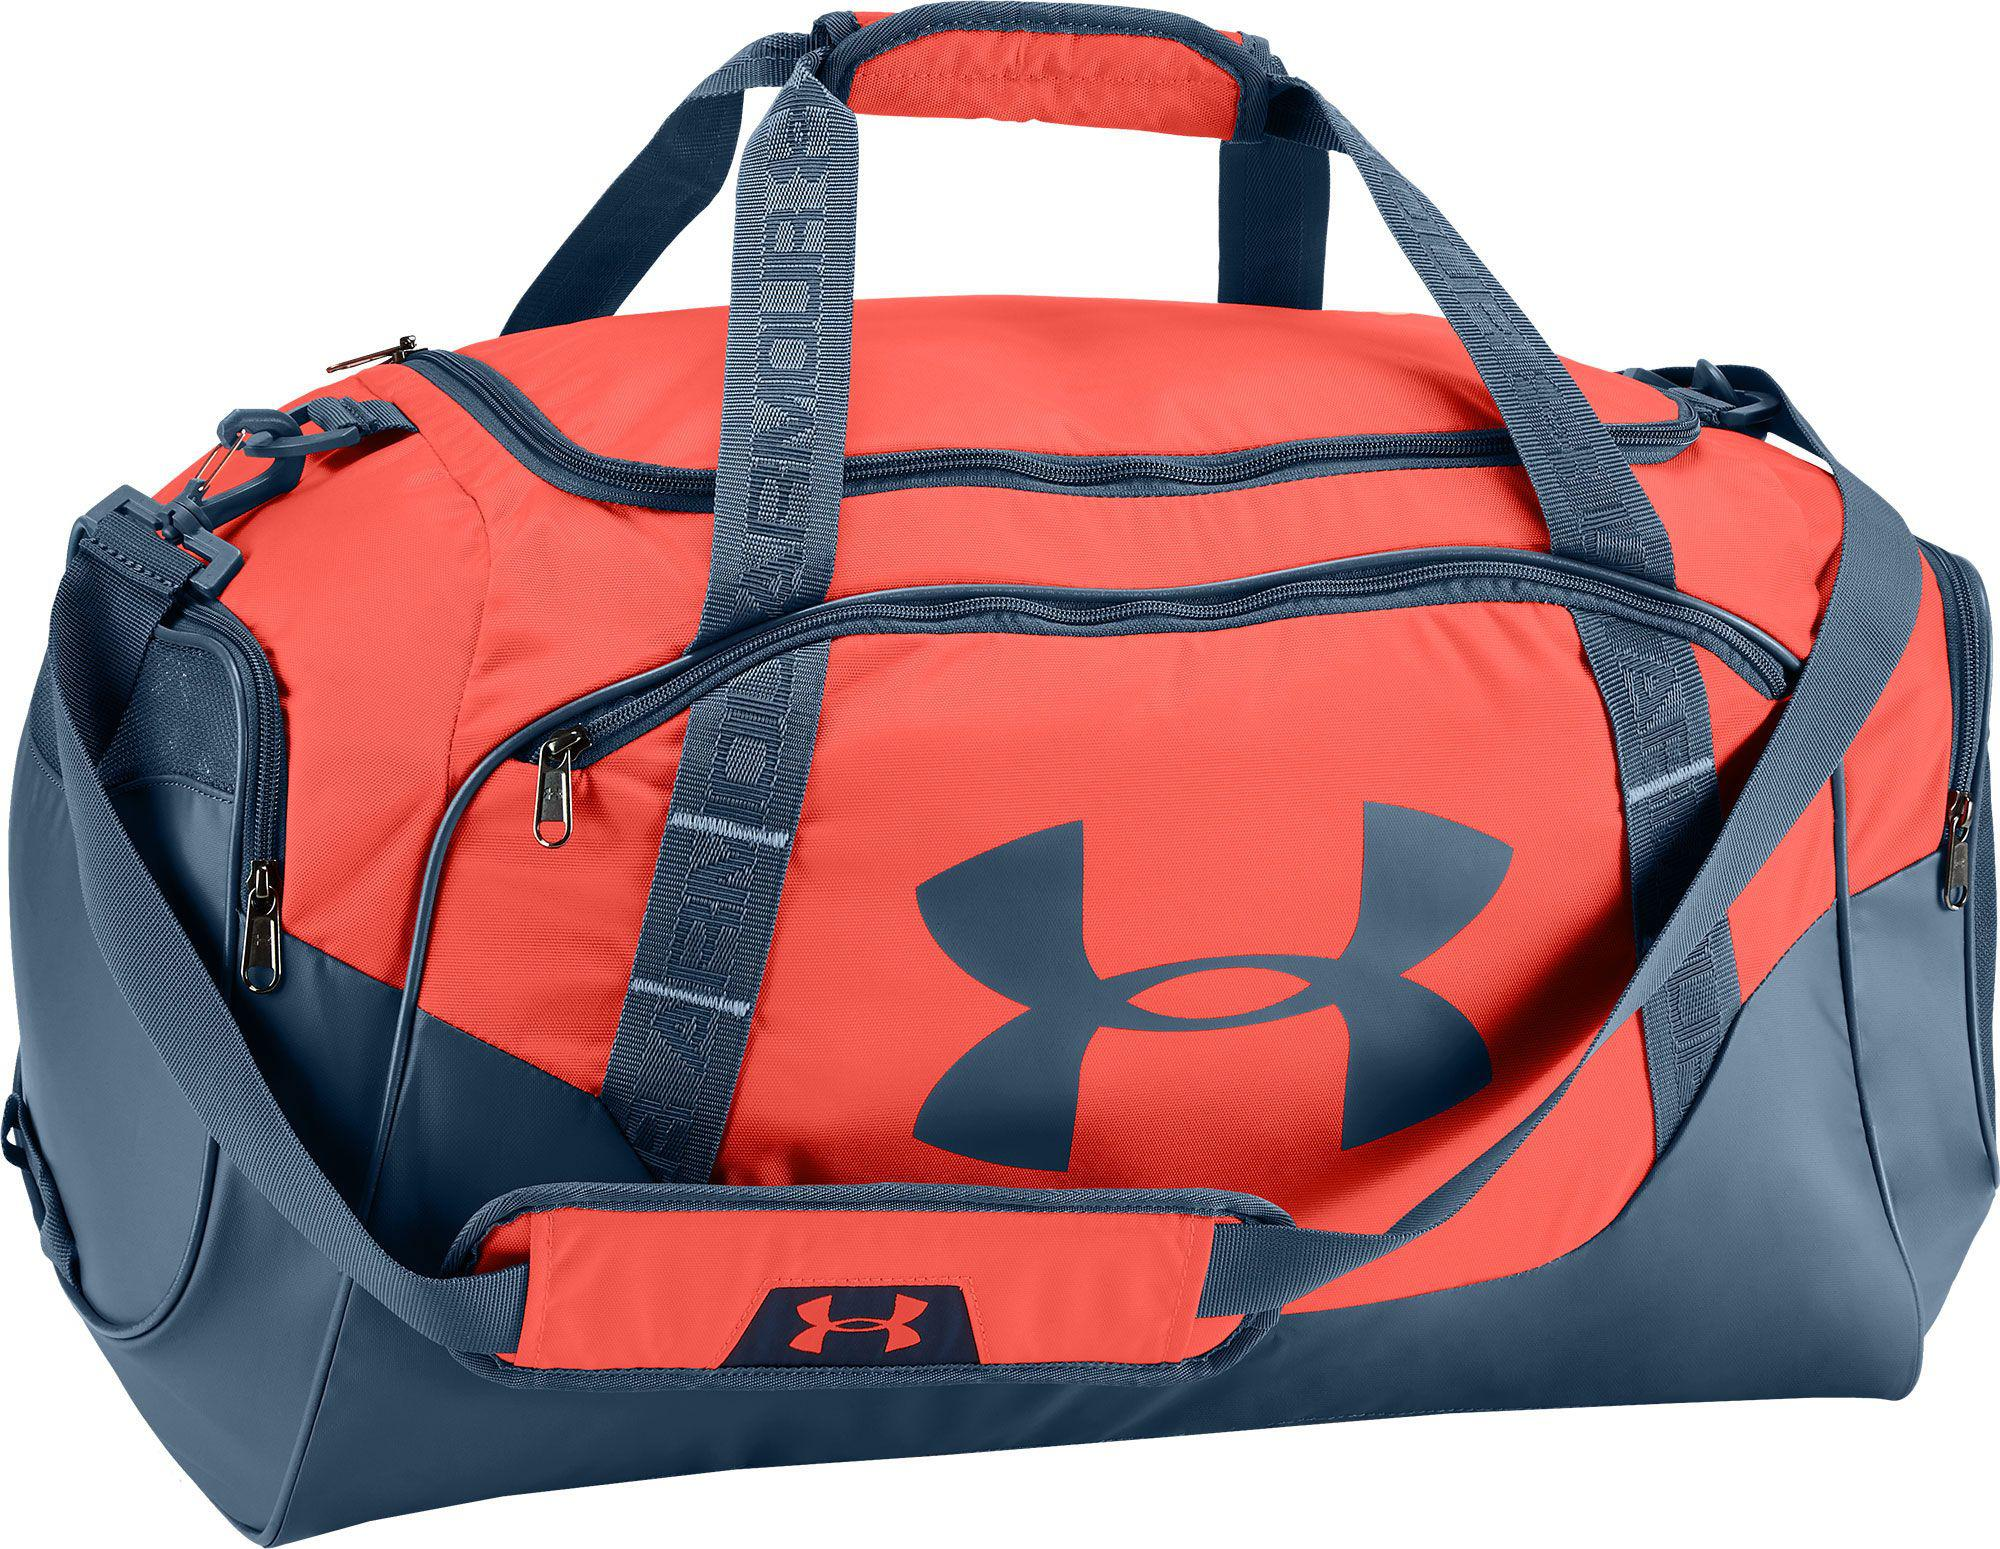 62c821864 Under Armour Undeniable 3.0 Medium Duffle Bag in Red for Men - Lyst